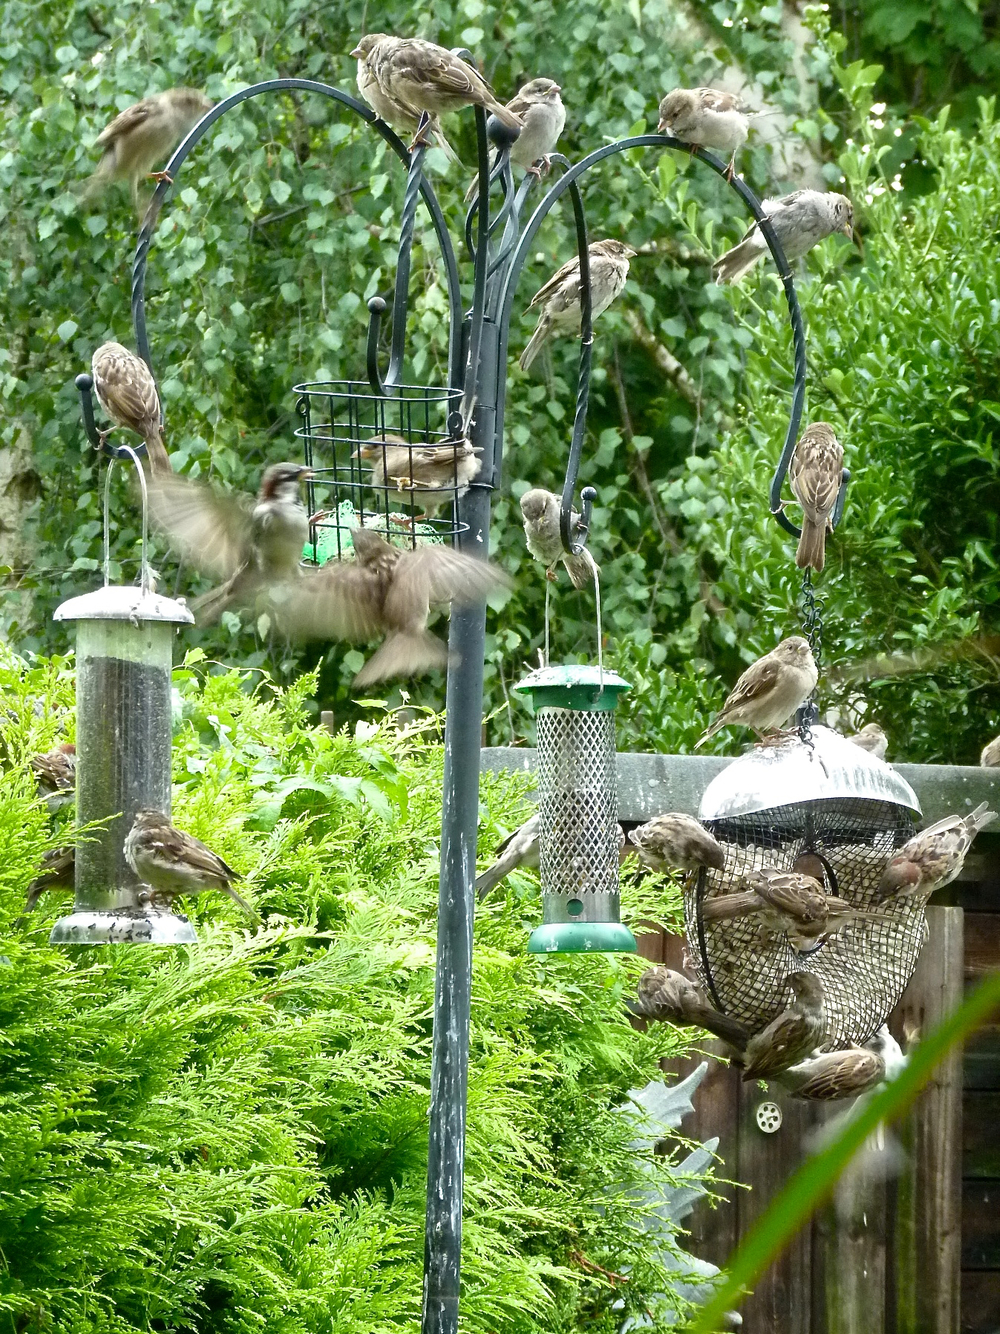 "This is our bird feeder. I protect the birds who eat here from Foxykins and from kitty cats. If someone shouts ""Kitty!"", I run into the garden barking and chase the cats away! Kitty is a word I know. The birds in this picture are called sparrows. How many sparrows can you count?"